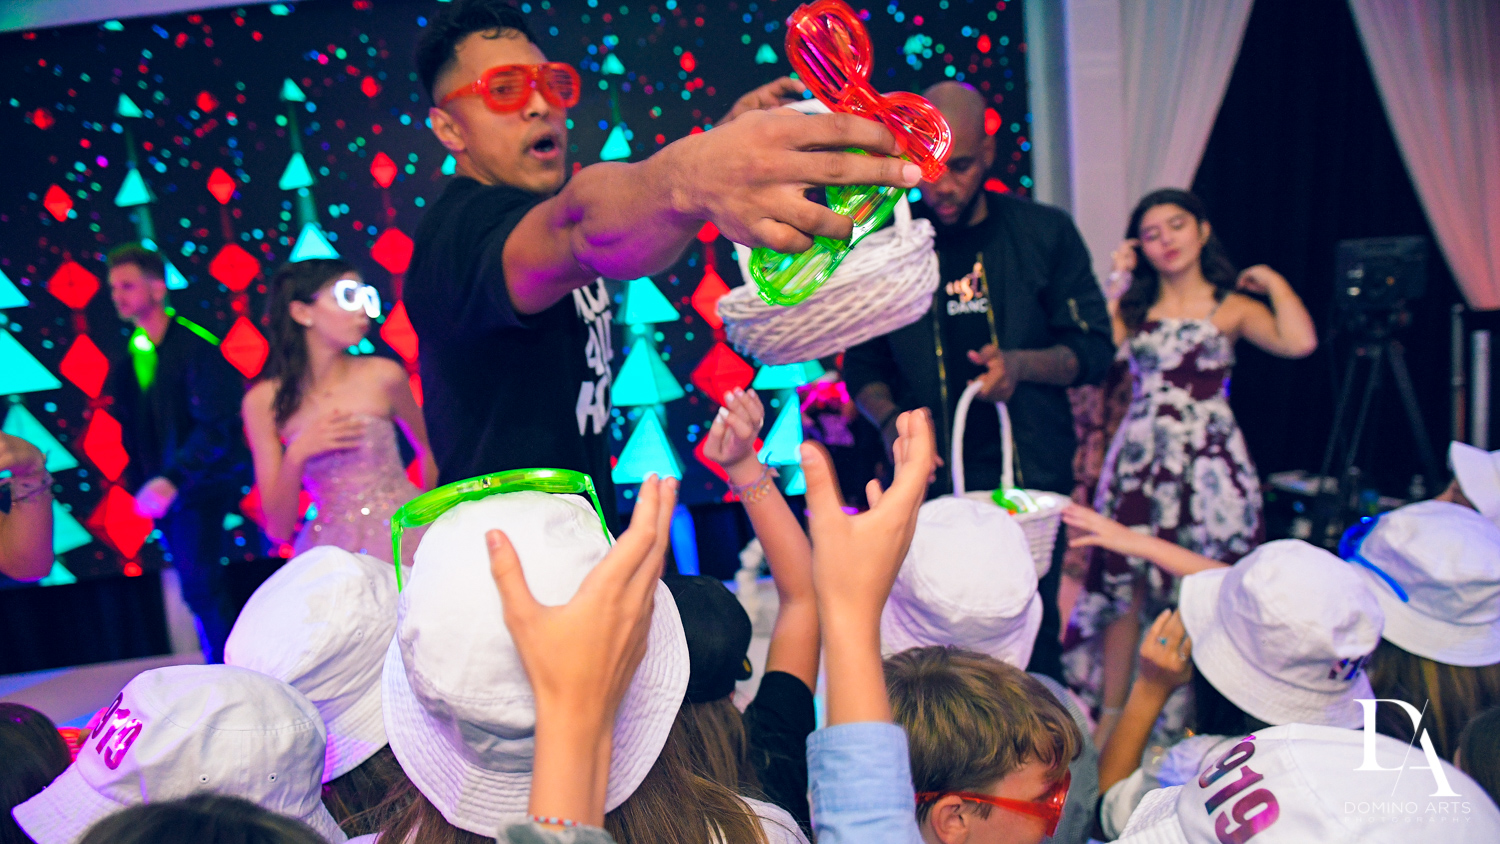 Mitzvah giveaways at Masquerade Ball Bat Mitzvah at Ritz Carlton Fort Lauderdale by Domino Arts Photography